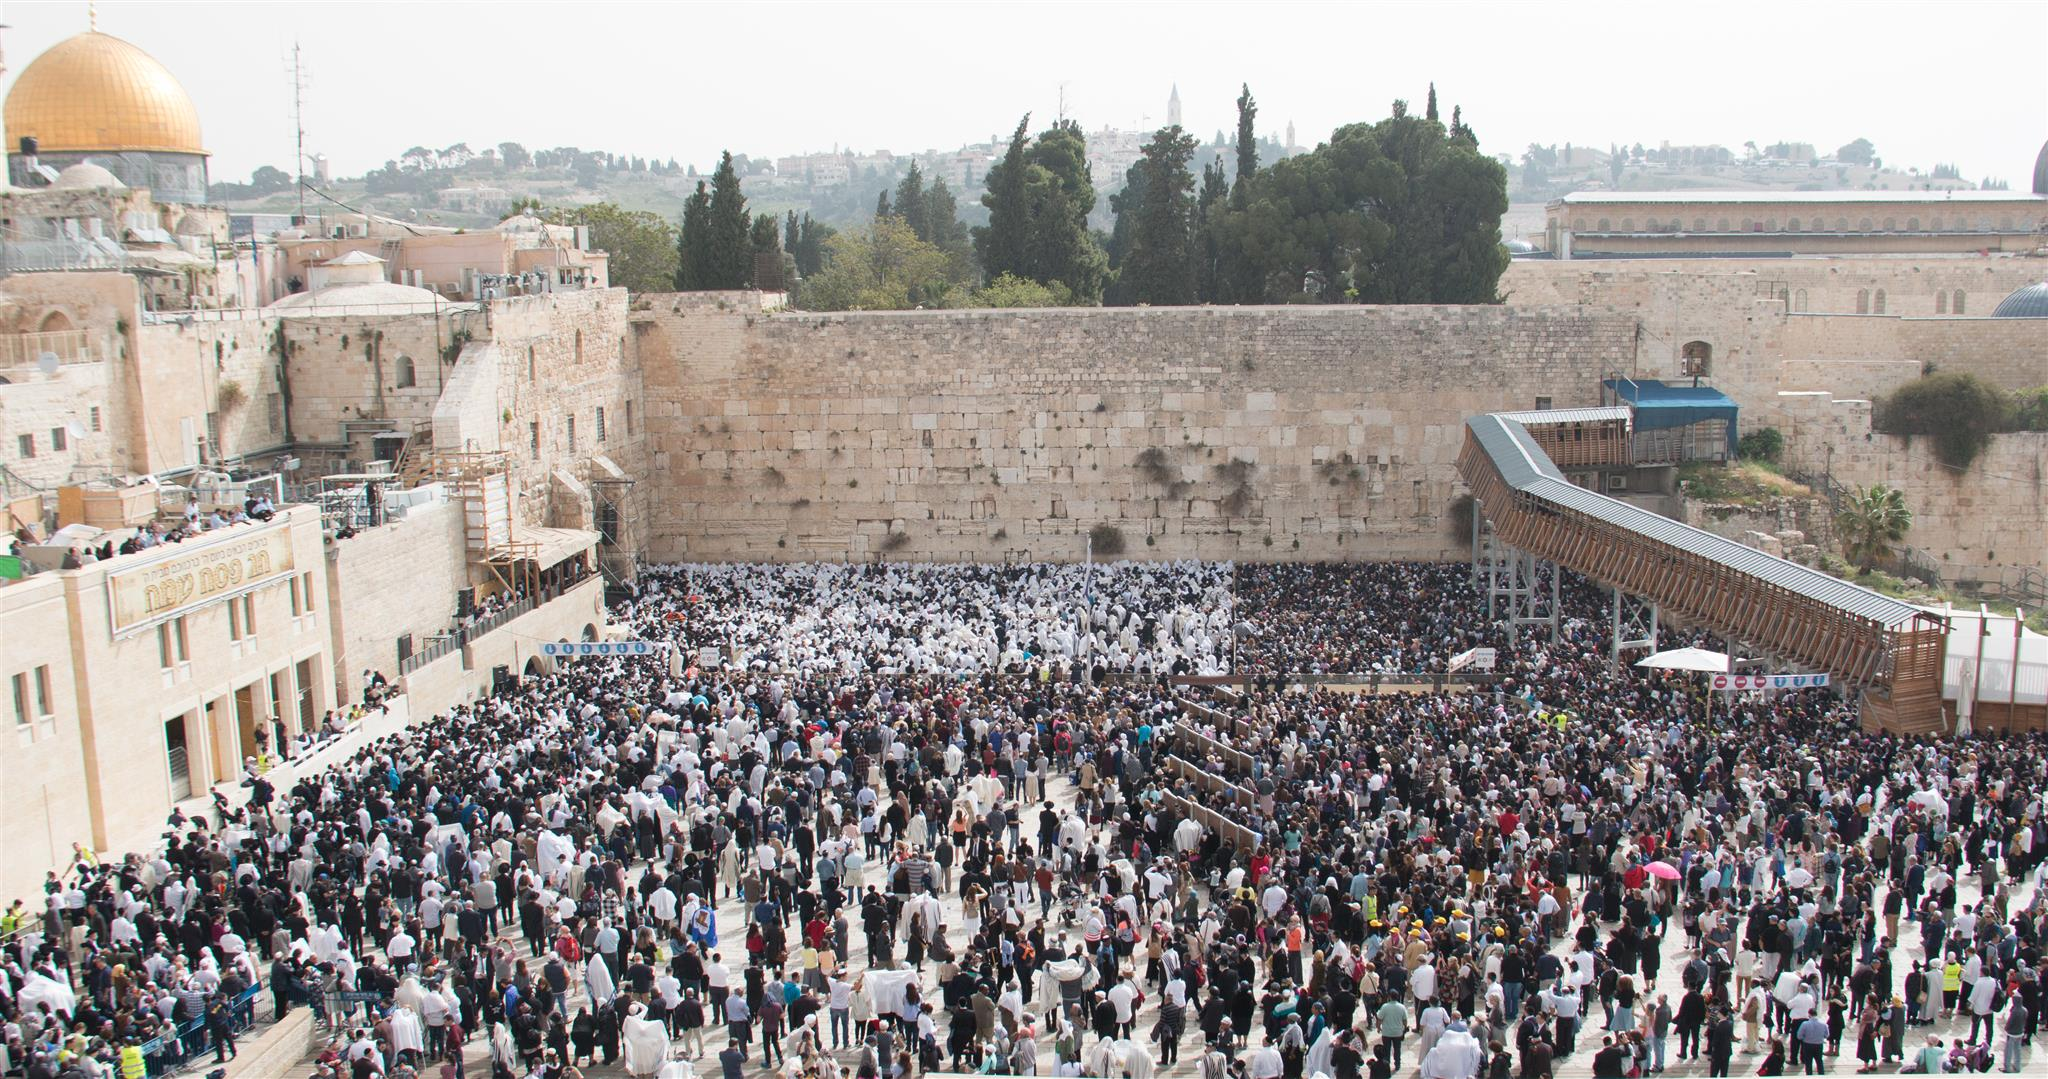 Kotel - full of people